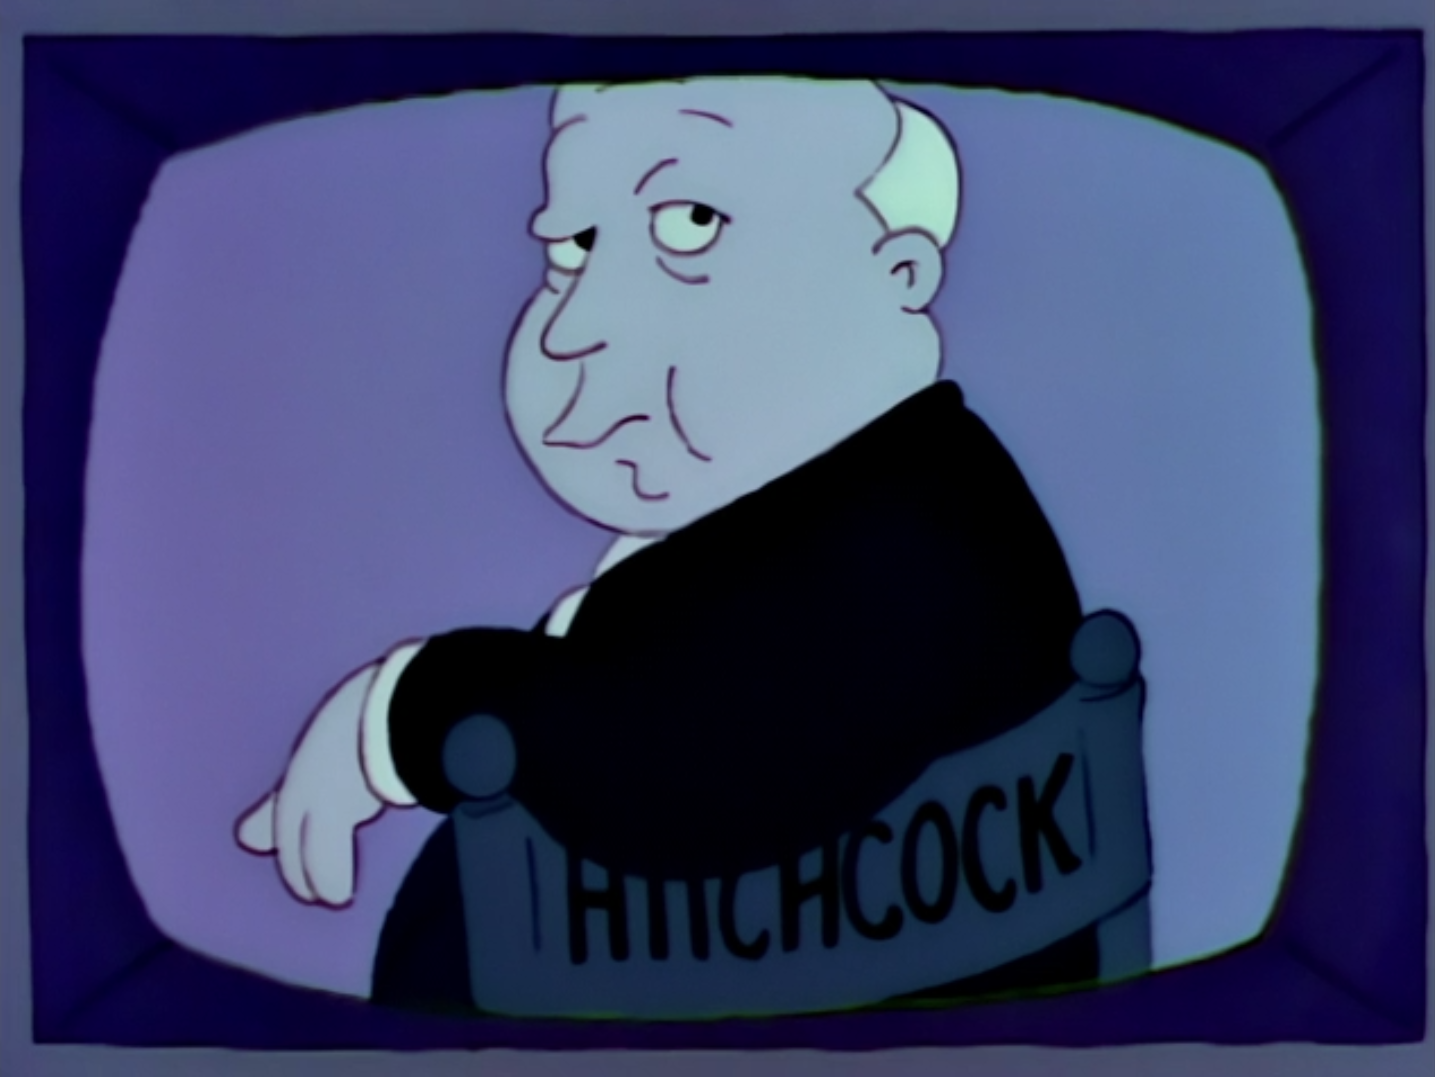 Hitchcock.png